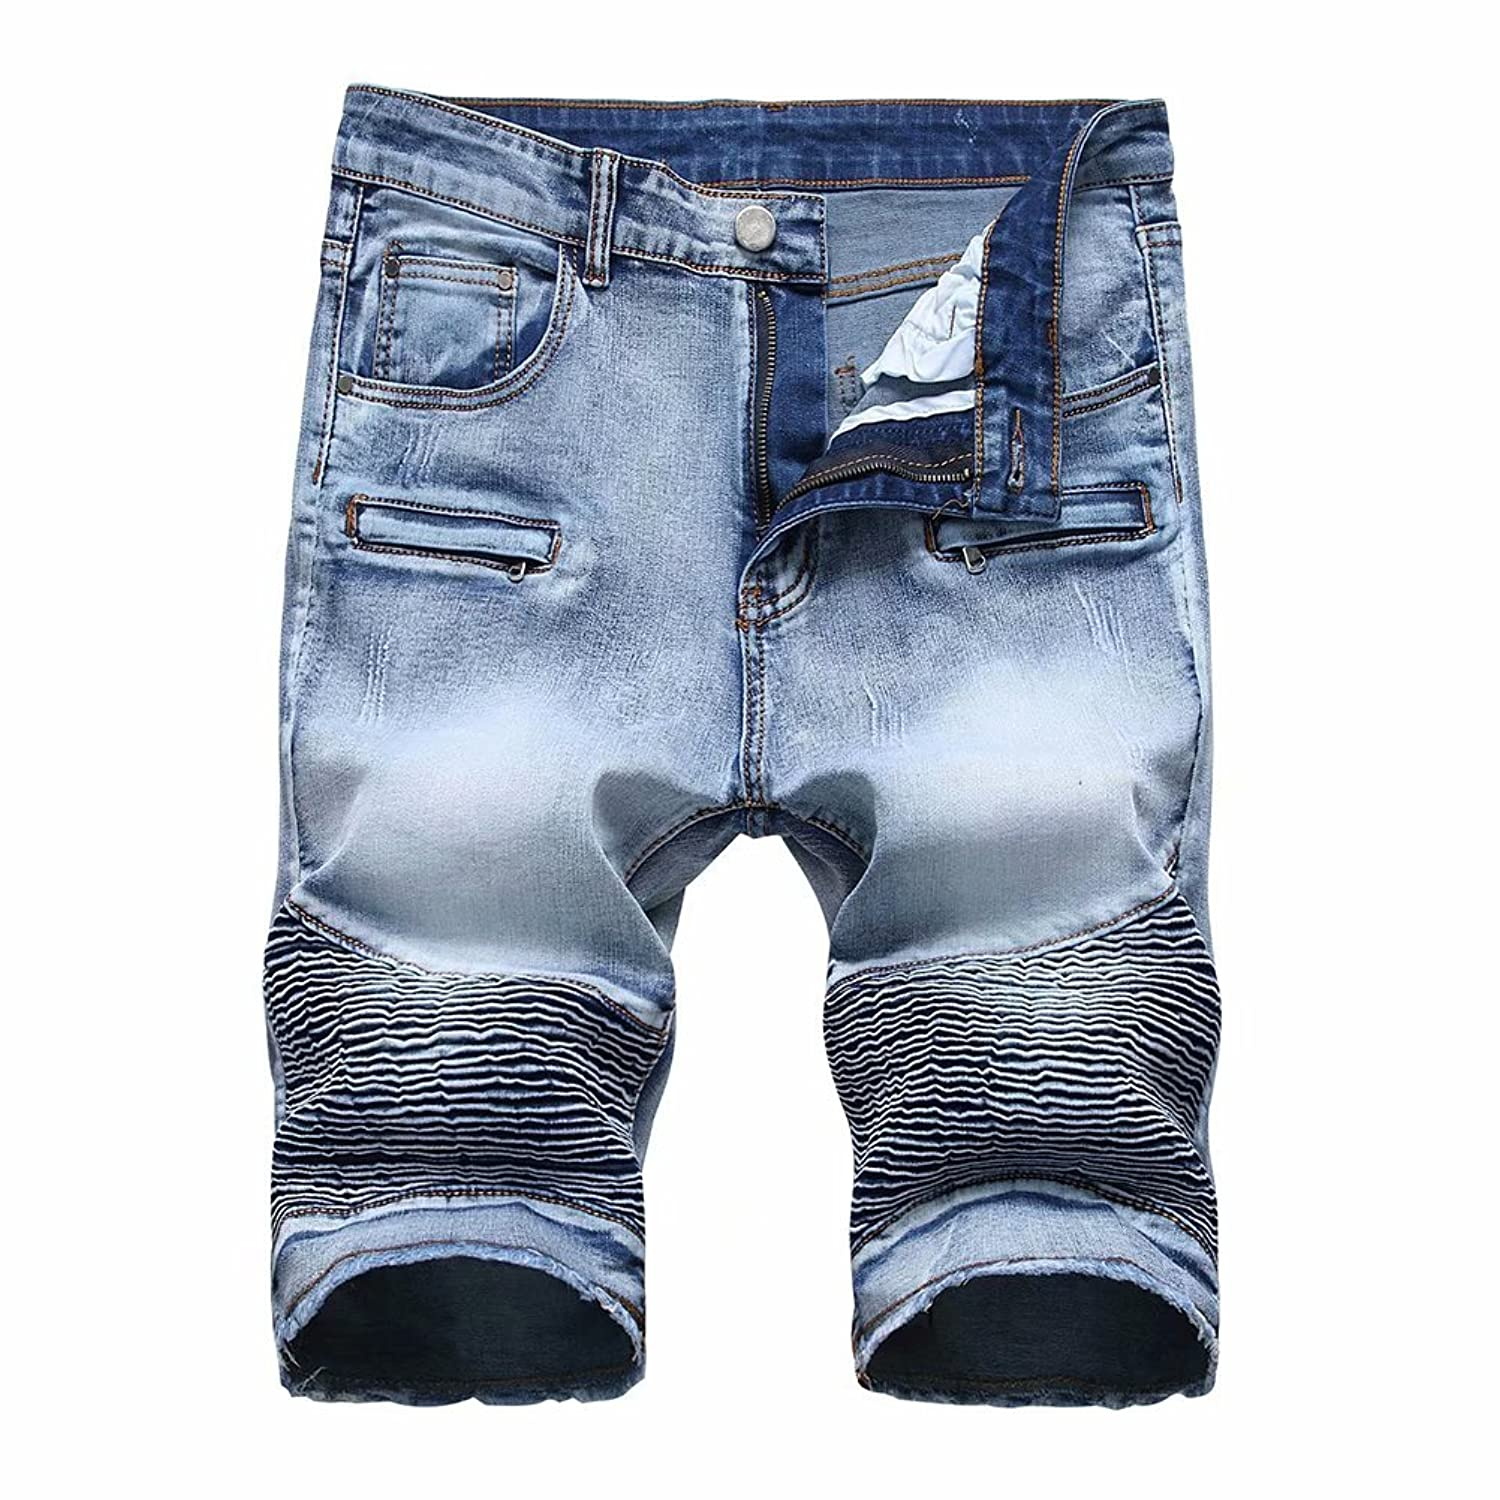 20db17bd1e Denim+Cotton Imported Zip closure with button fly closure. Mens men's  fashion casual ripped distressed jeans short straight fit casual stretch  zipper fly ...